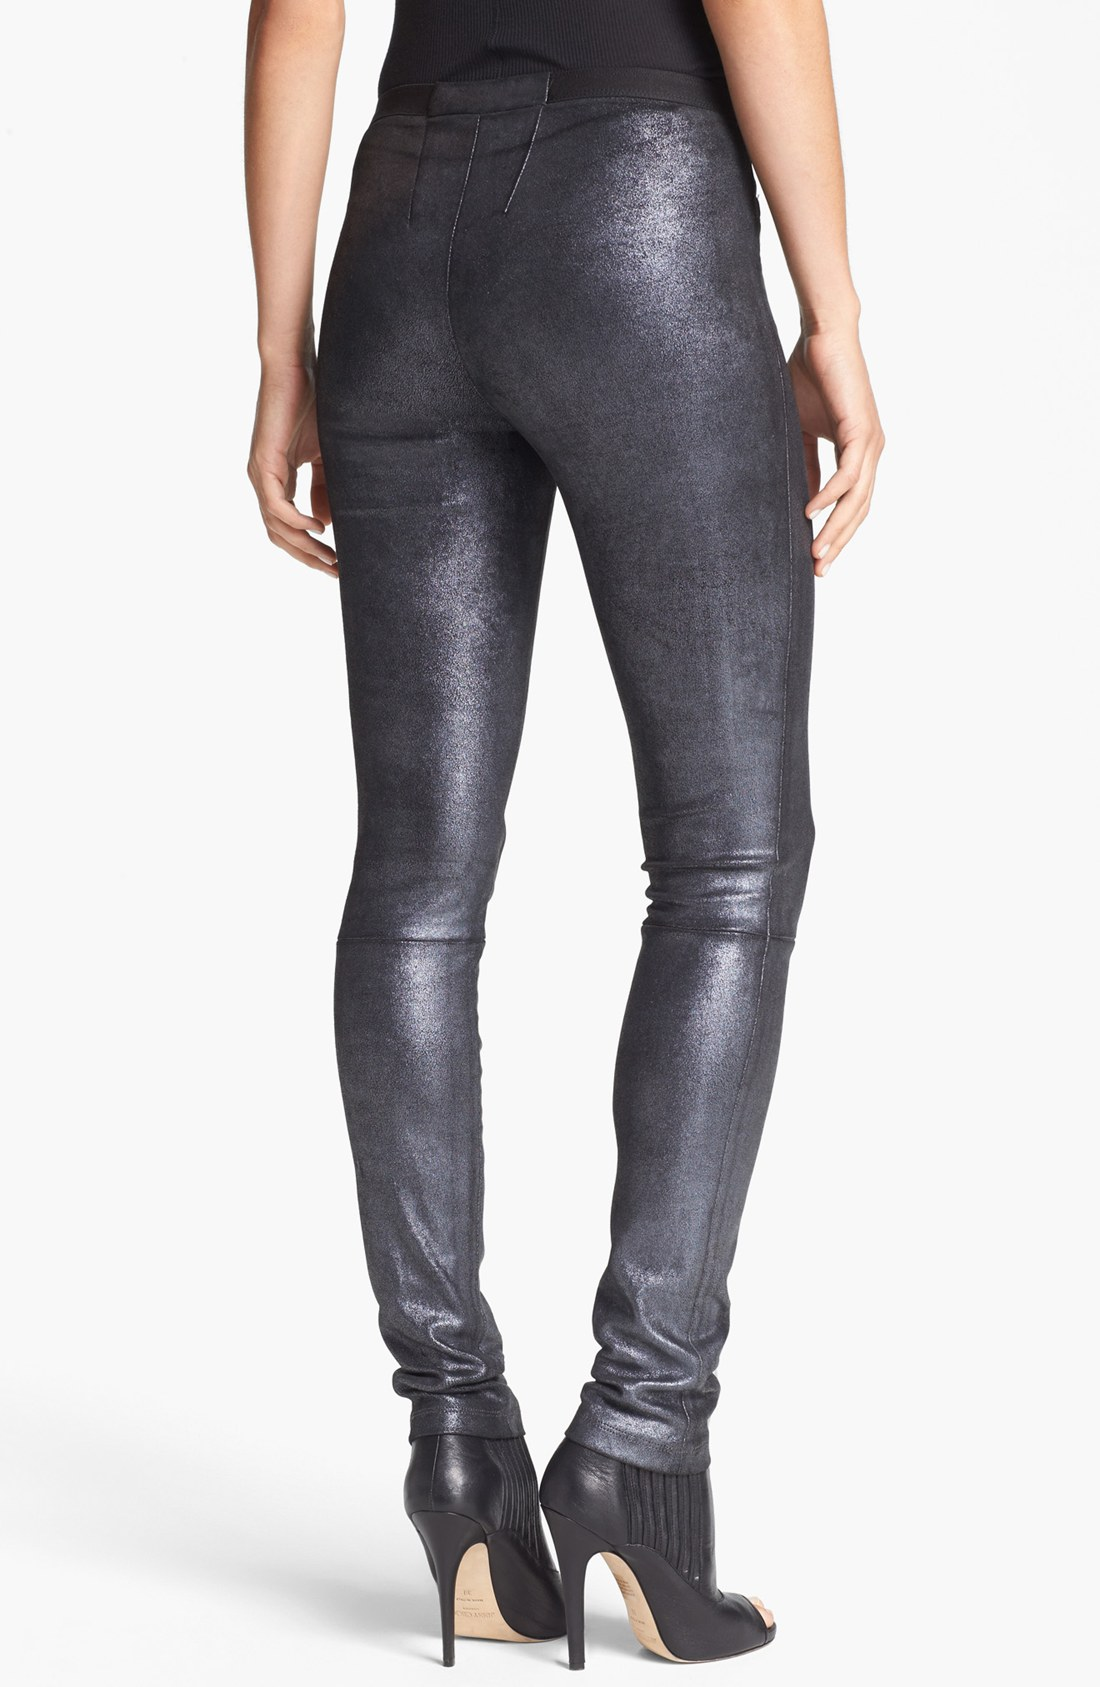 Leggings and tights for women. Buy styles for work, casual, yoga, and club leggings. Cheap prices for black, white, and printed leggings.